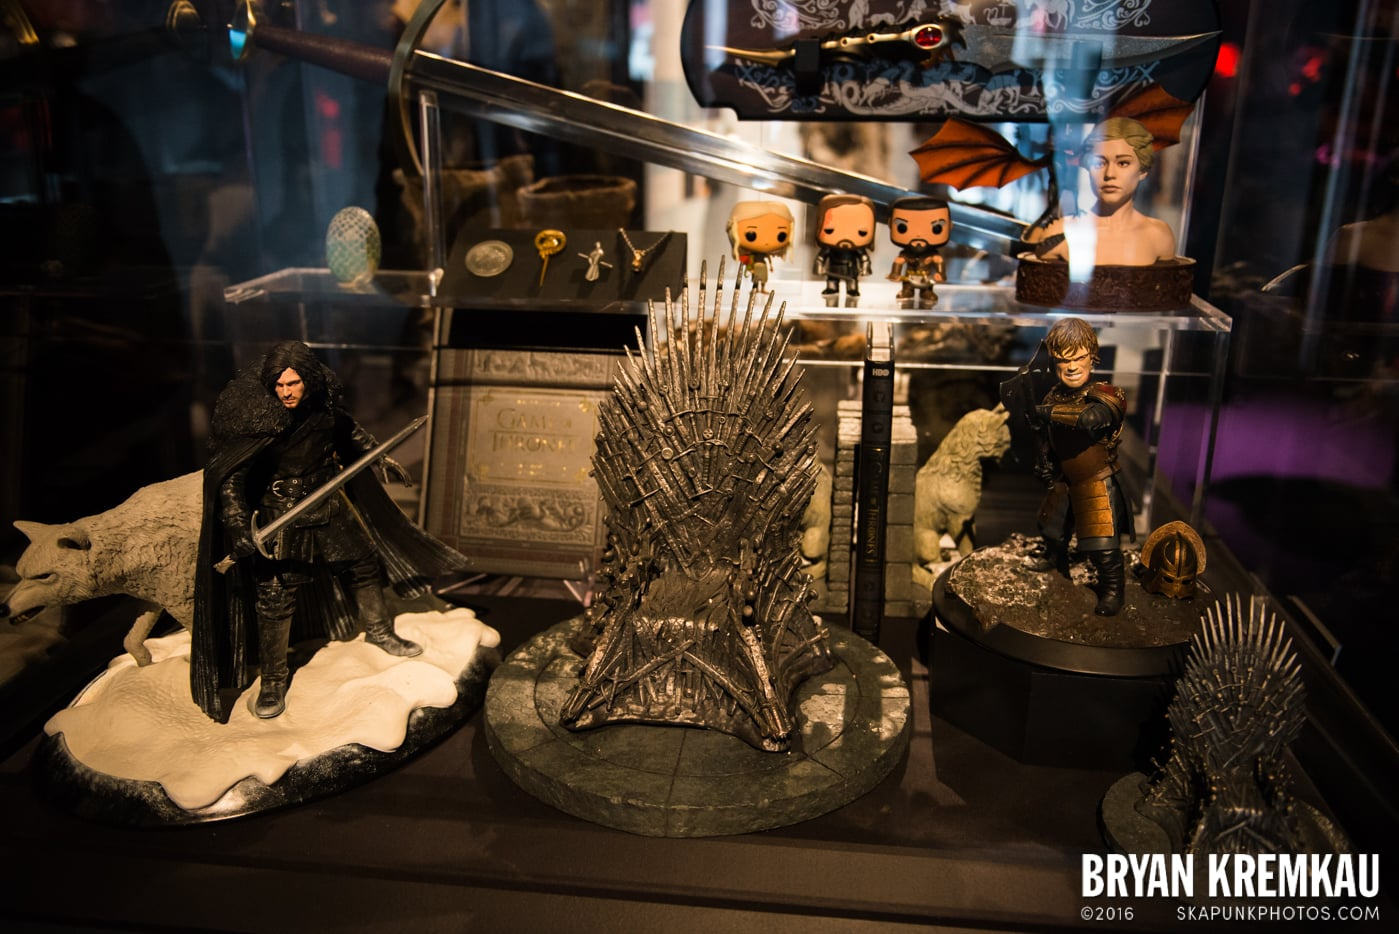 Game Of Thrones Exhibition @ New York, NY - 3.29.13 (55)